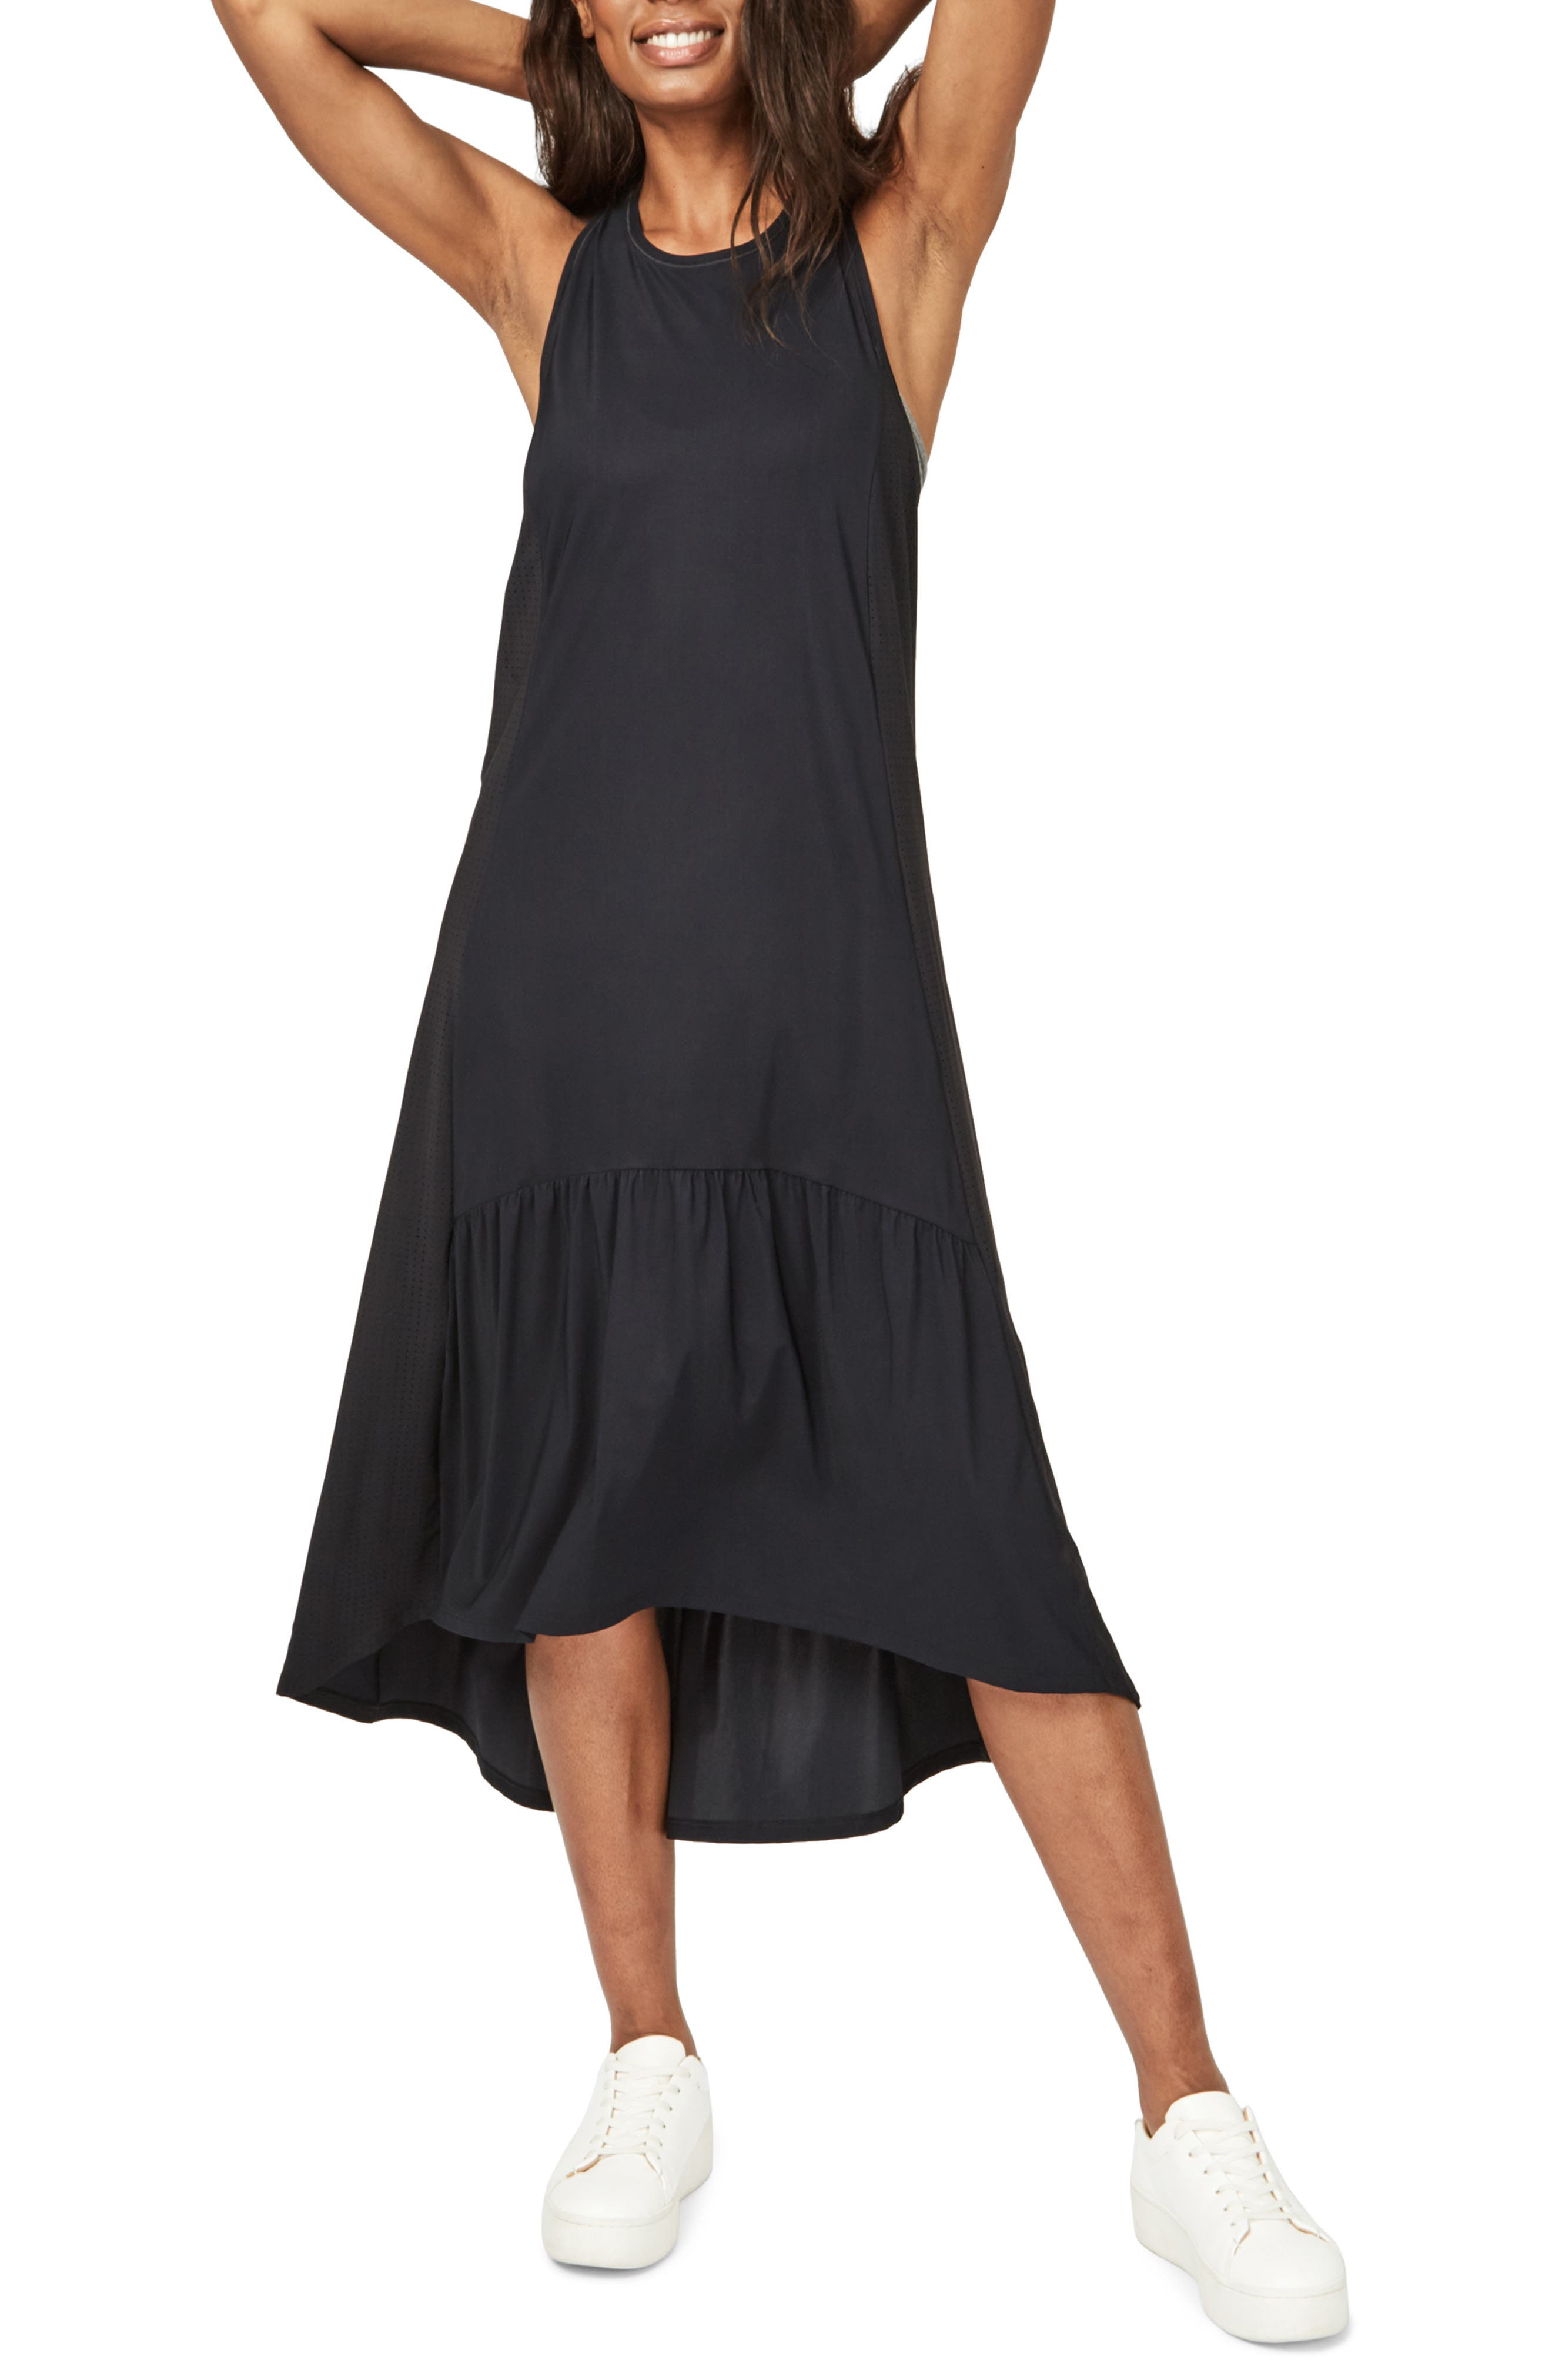 A gently ruffled high/low hem elevates the easygoing feel of a flowy midi dress perfect for relaxing in after a workout. Style Name: Sweaty Betty Ace Racerback Midi Dress. Style Number: 6042254. Available in stores.